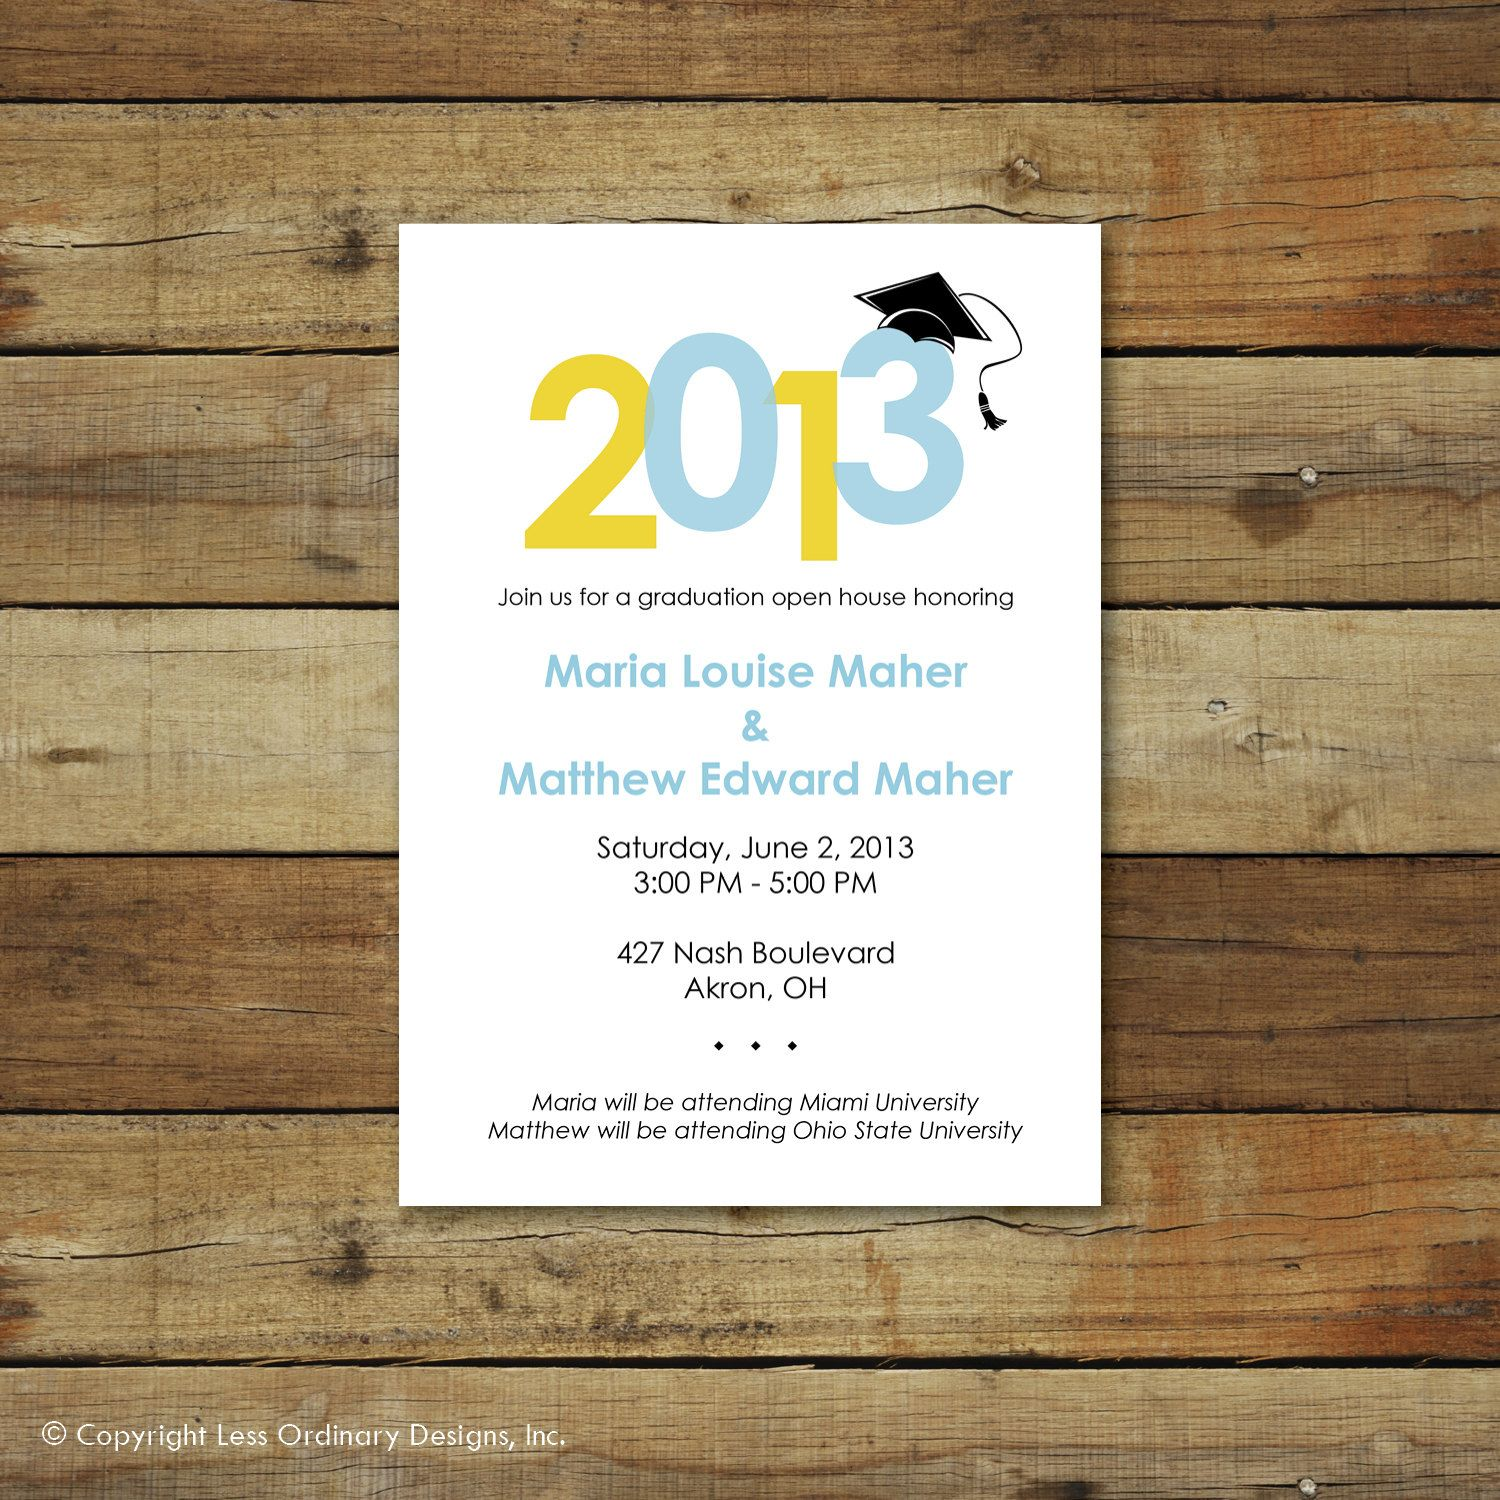 Graduation party invitation or open house invitation custom